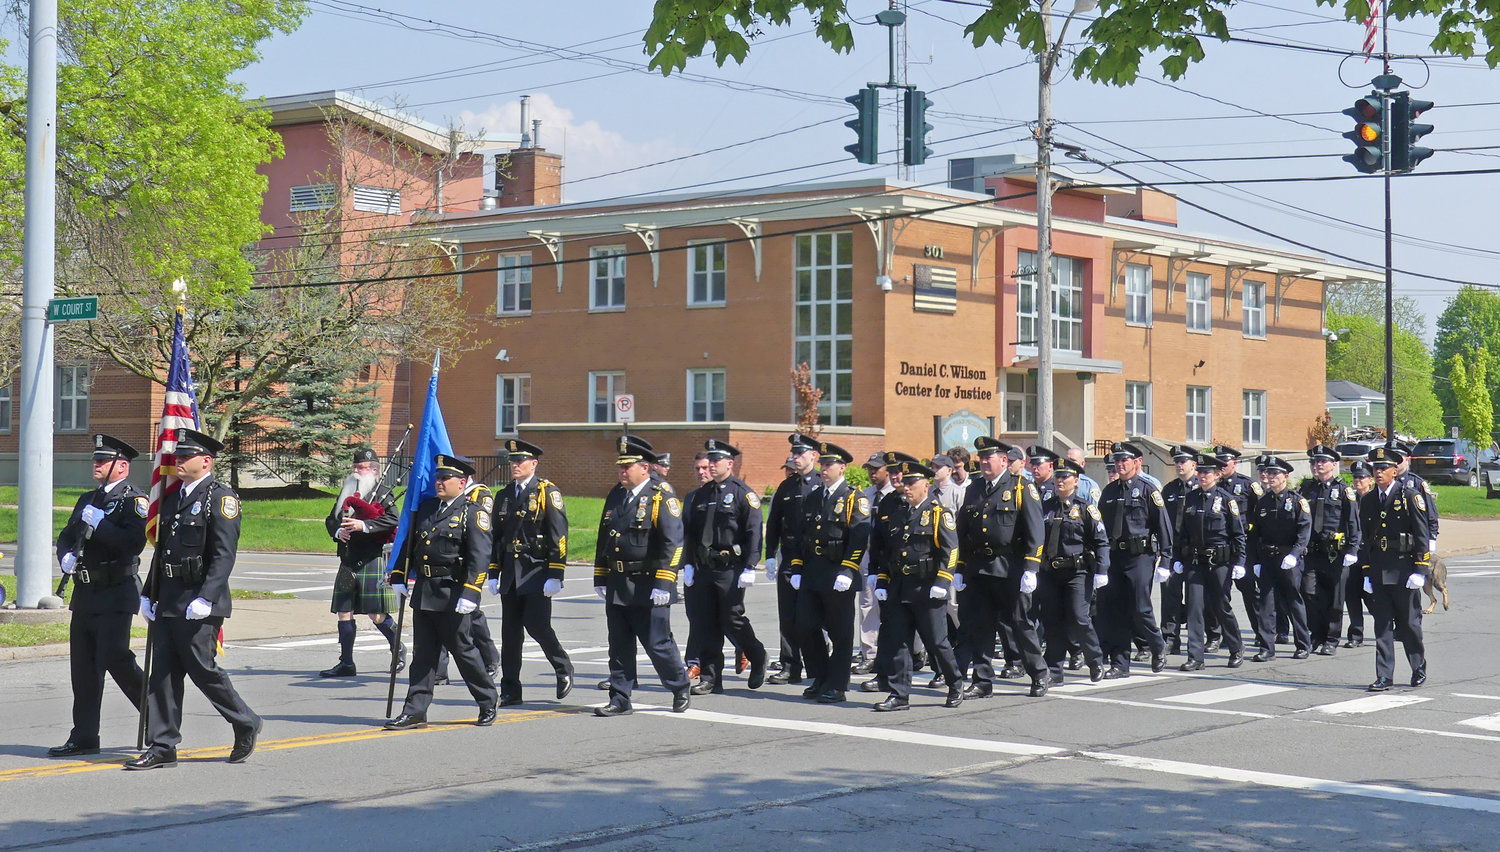 THE CITY'S FINEST — Clad in their dress uniforms, the members of the Rome Police Department march from the station to St. Paul's Church a block down North James Street for their annual awards ceremony on Sunday.